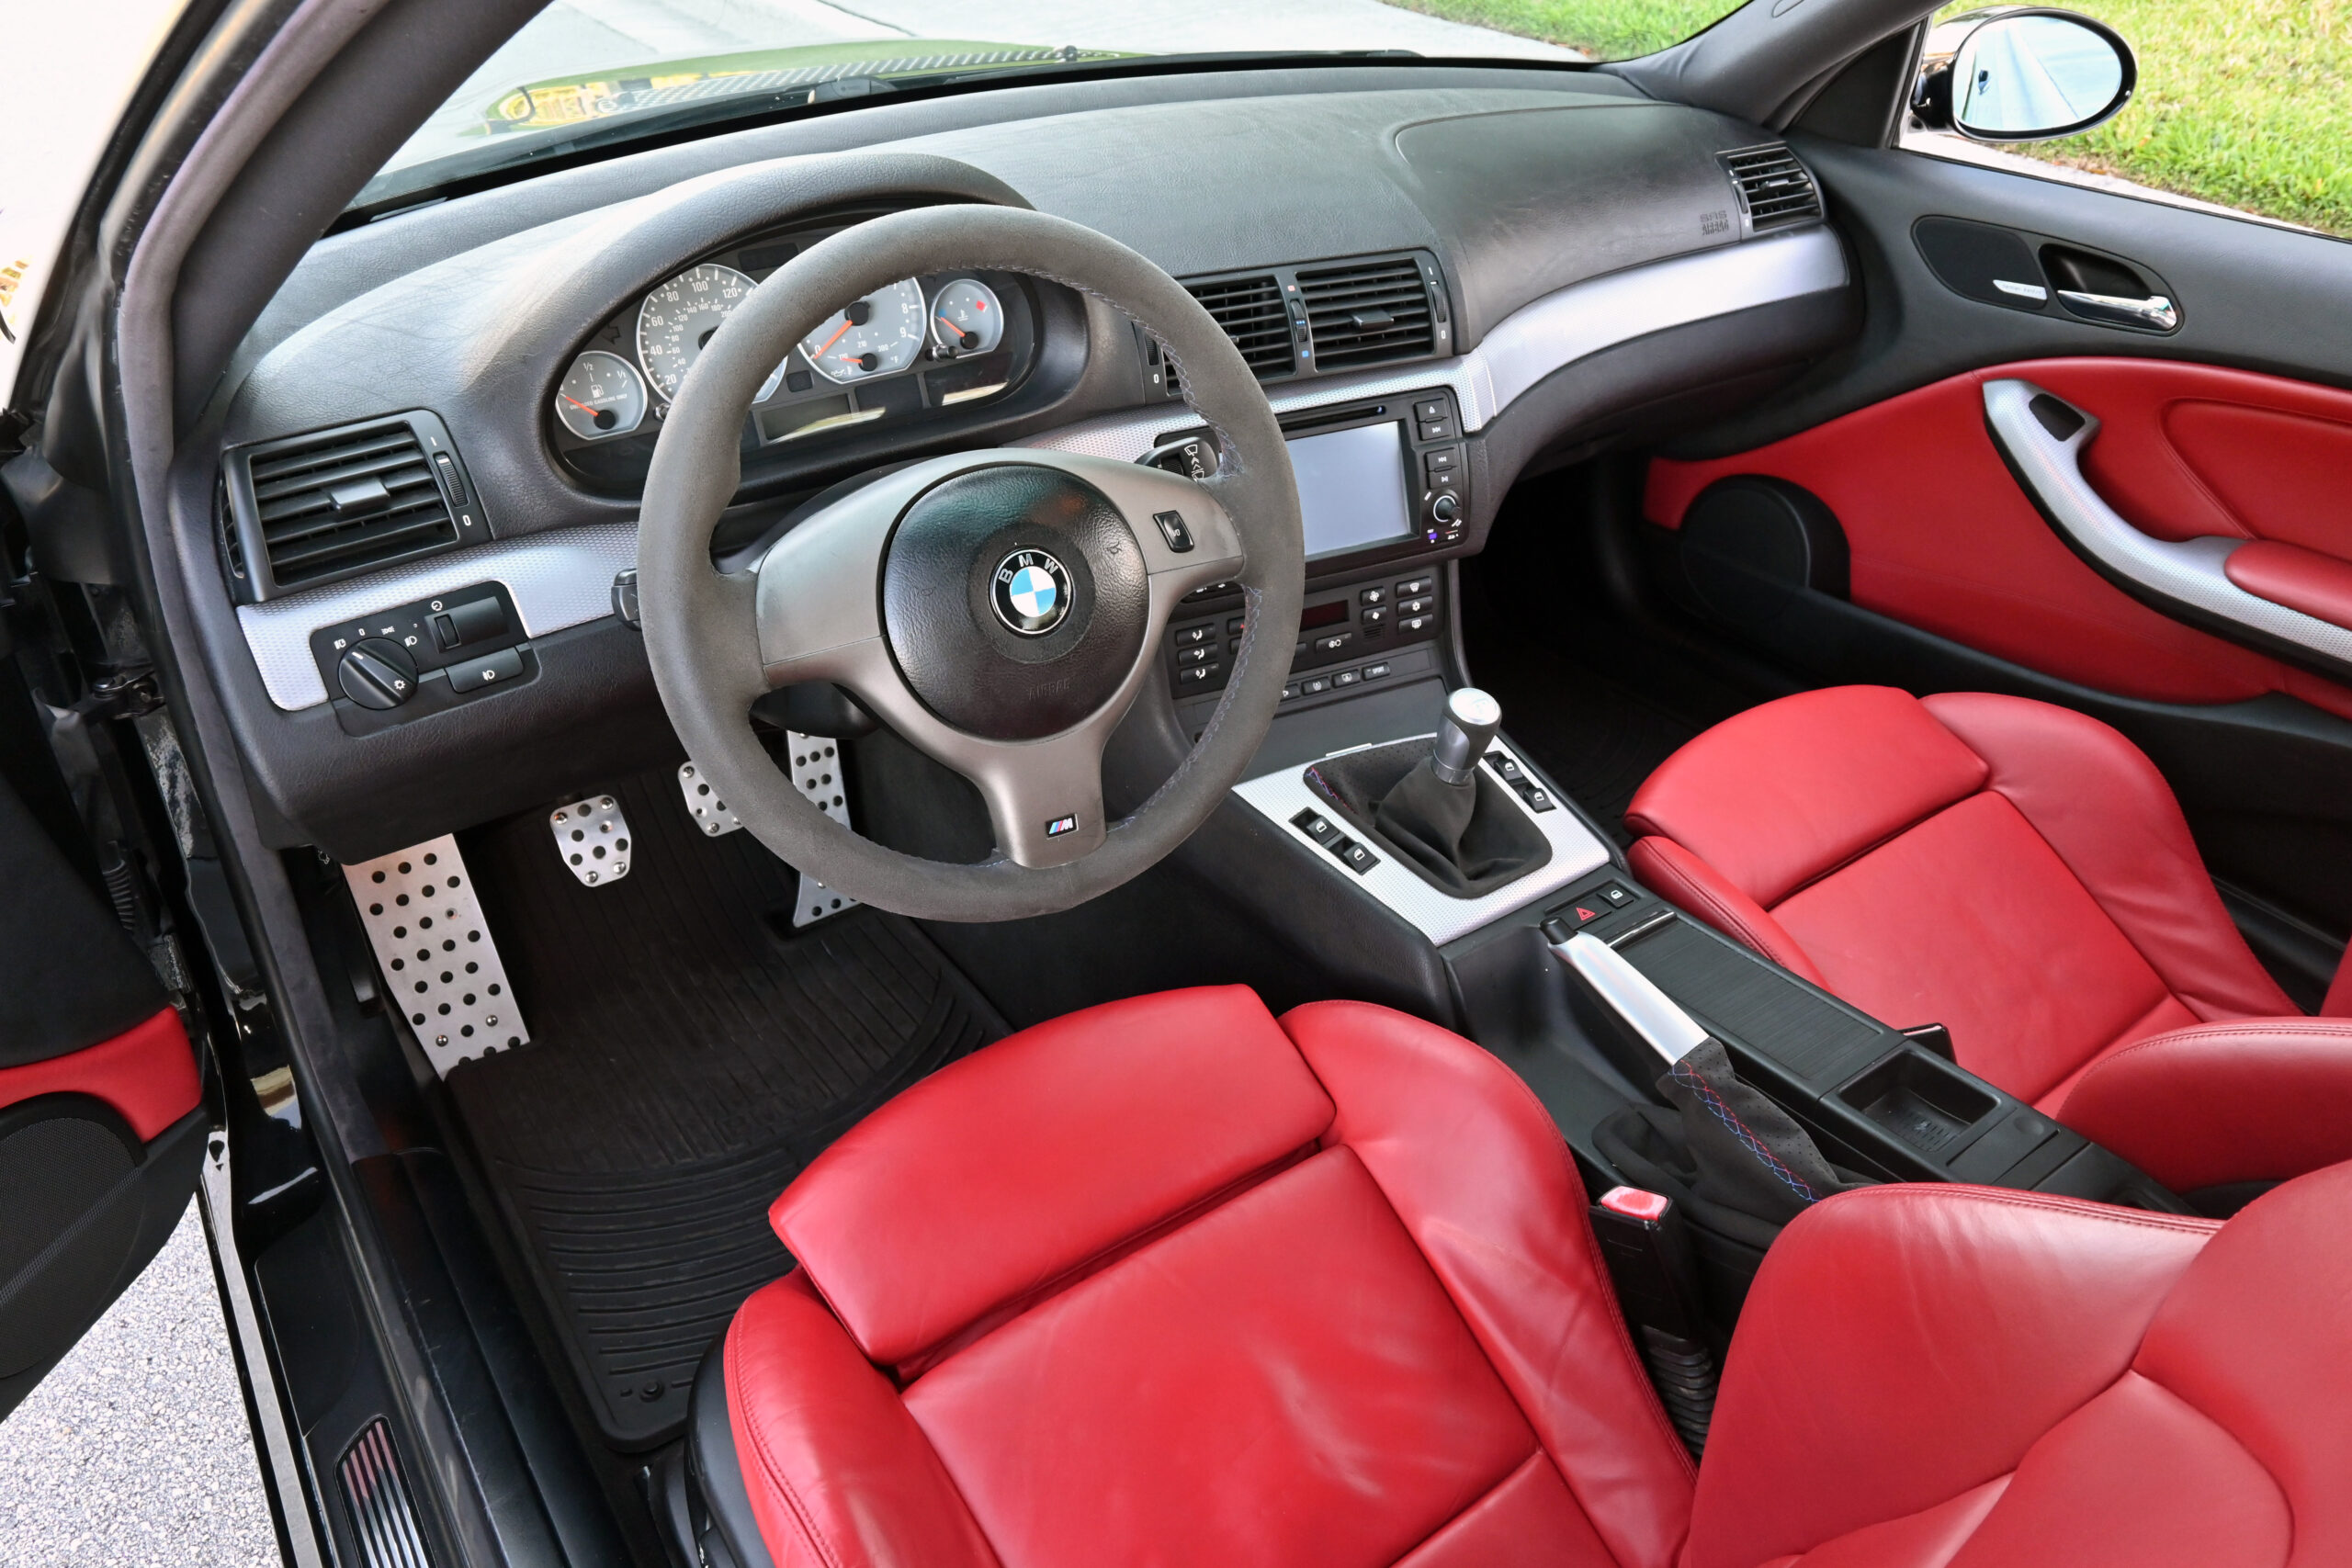 2006 BMW M3 ZCP package 6-speed, 3-pedal, big 3 done, very well sorted turn key, Imola guts, clean history